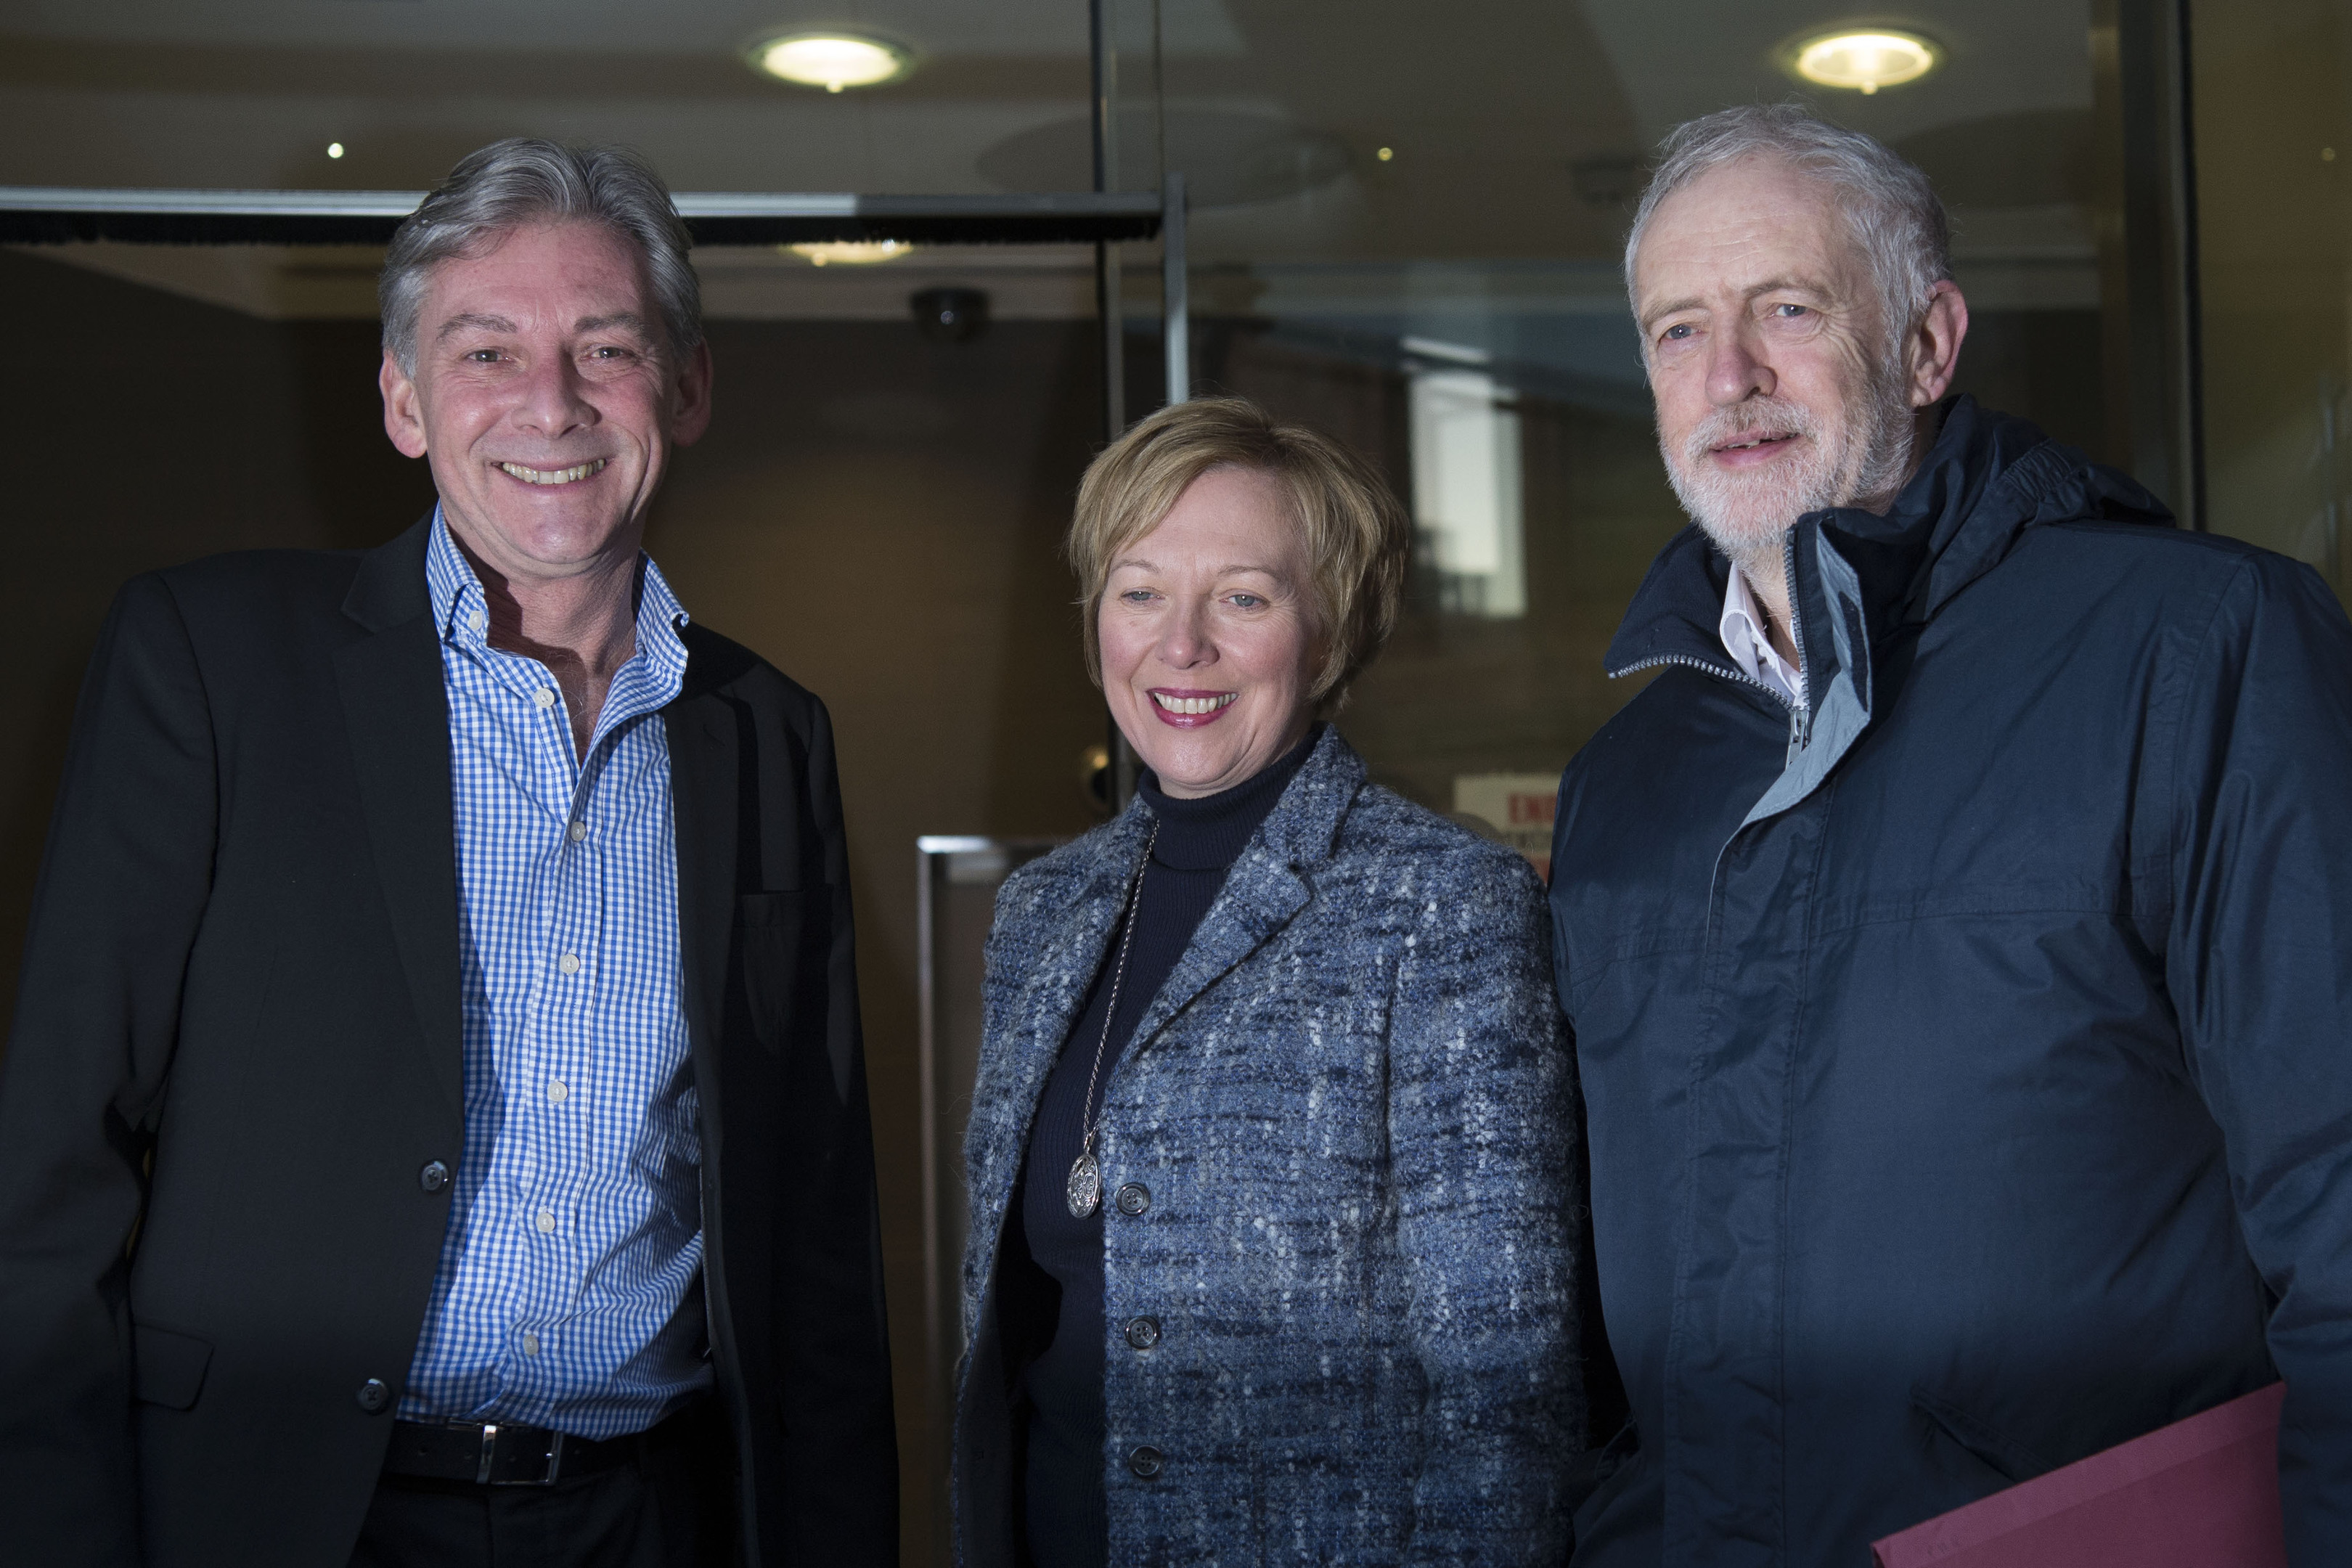 Labour Party leader Jeremy Corbyn (right) with newly elected Scottish Labour leader Richard Leonard and Lesley Laird MP ahead of the party's National Executive Committee (NEC) meeting in Glasgow. PRESS ASSOCIATION Photo. Picture date: Sunday November 26, 2017. See PA story SCOTLAND Labour. Photo credit should read: John Linton/PA Wire